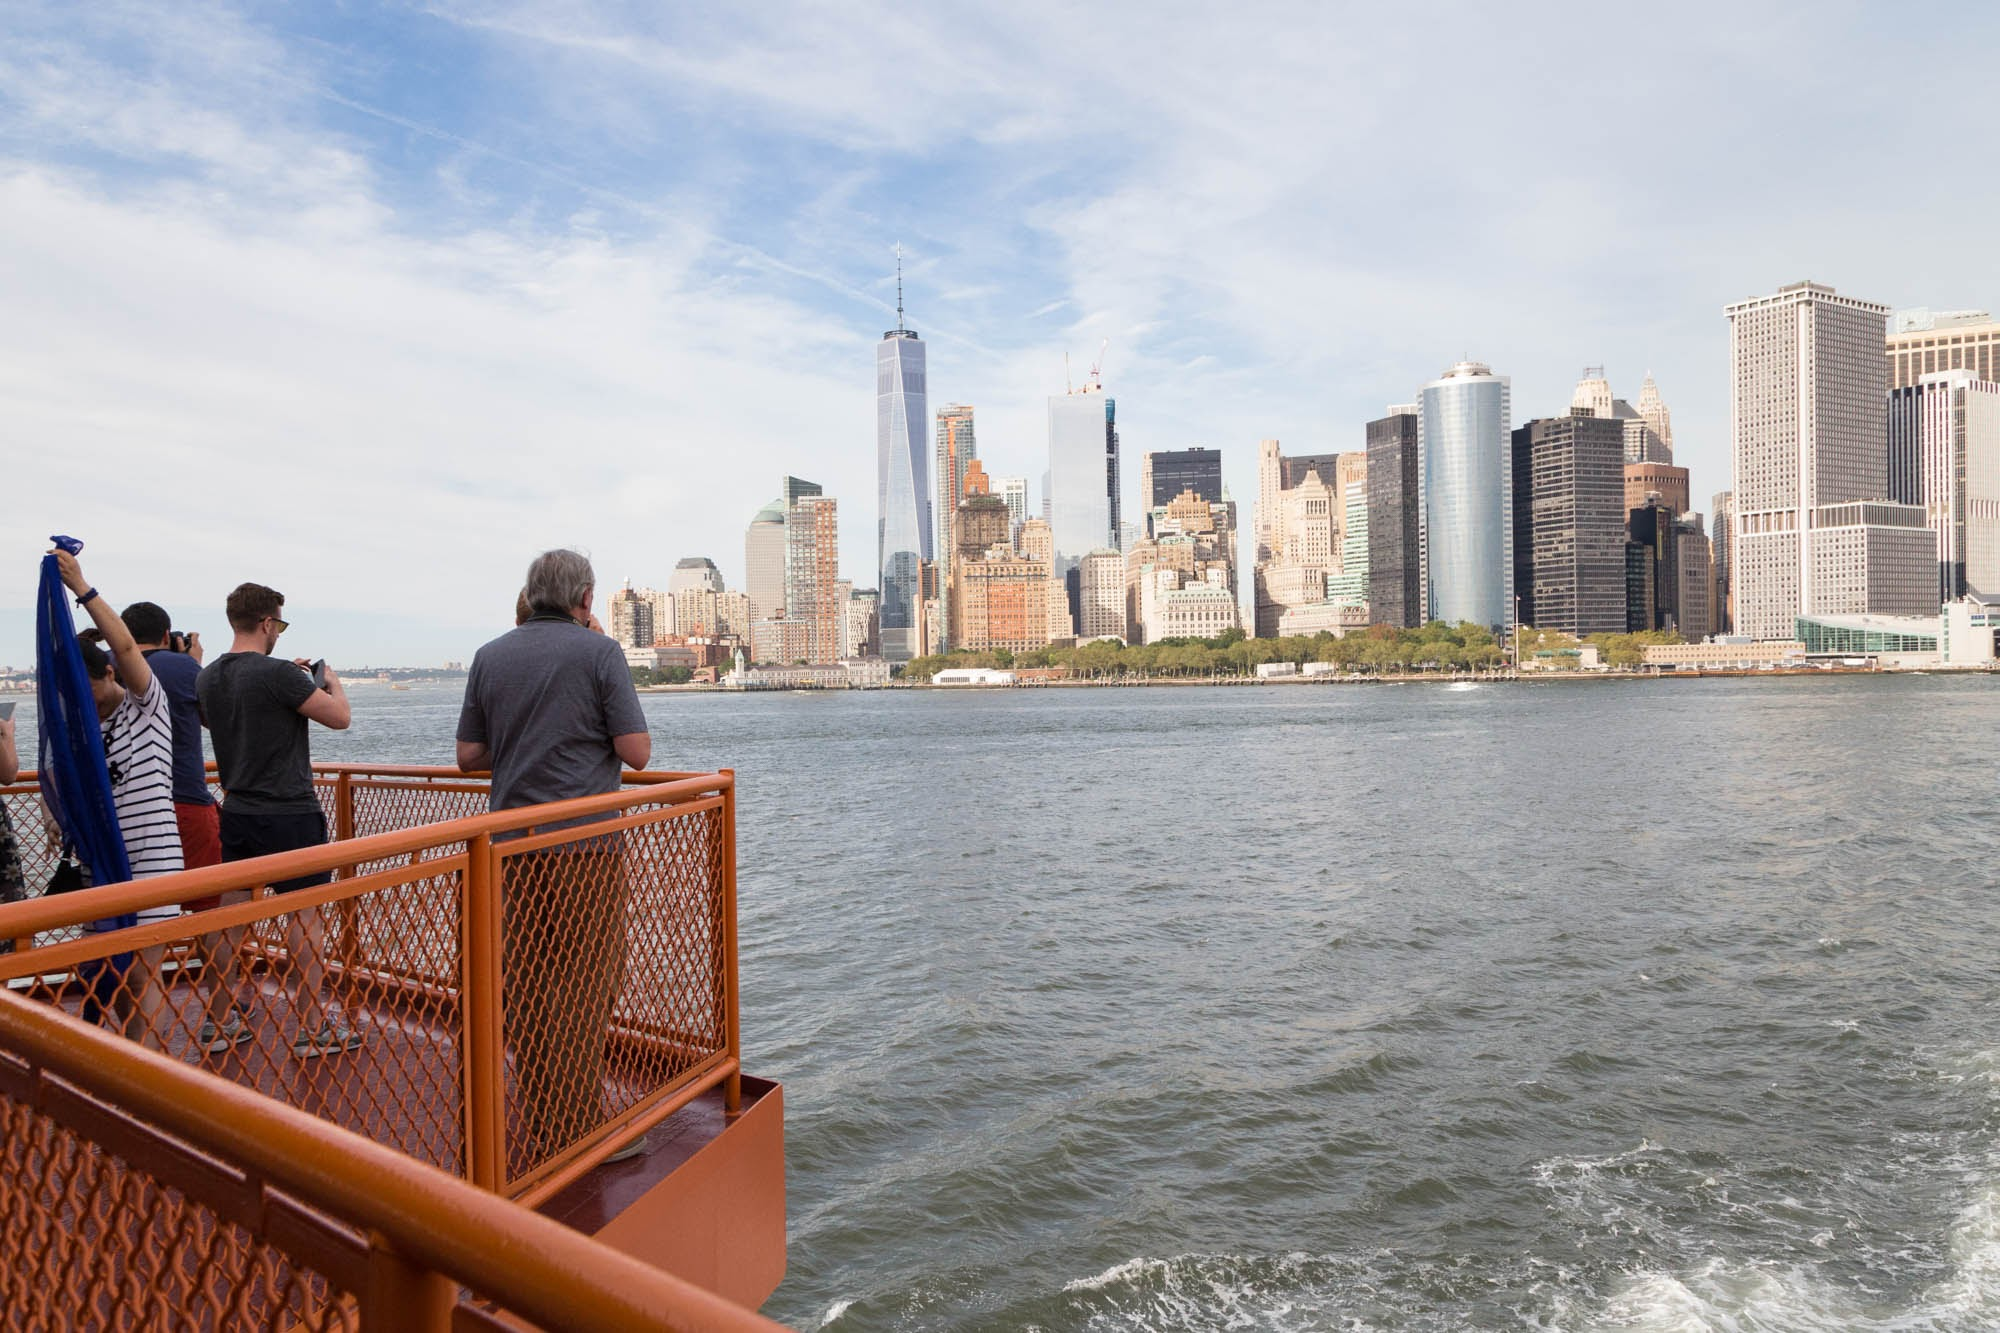 The view from the back of the boat as it heads to Staten Island (or the front as it heads to Manhattan).